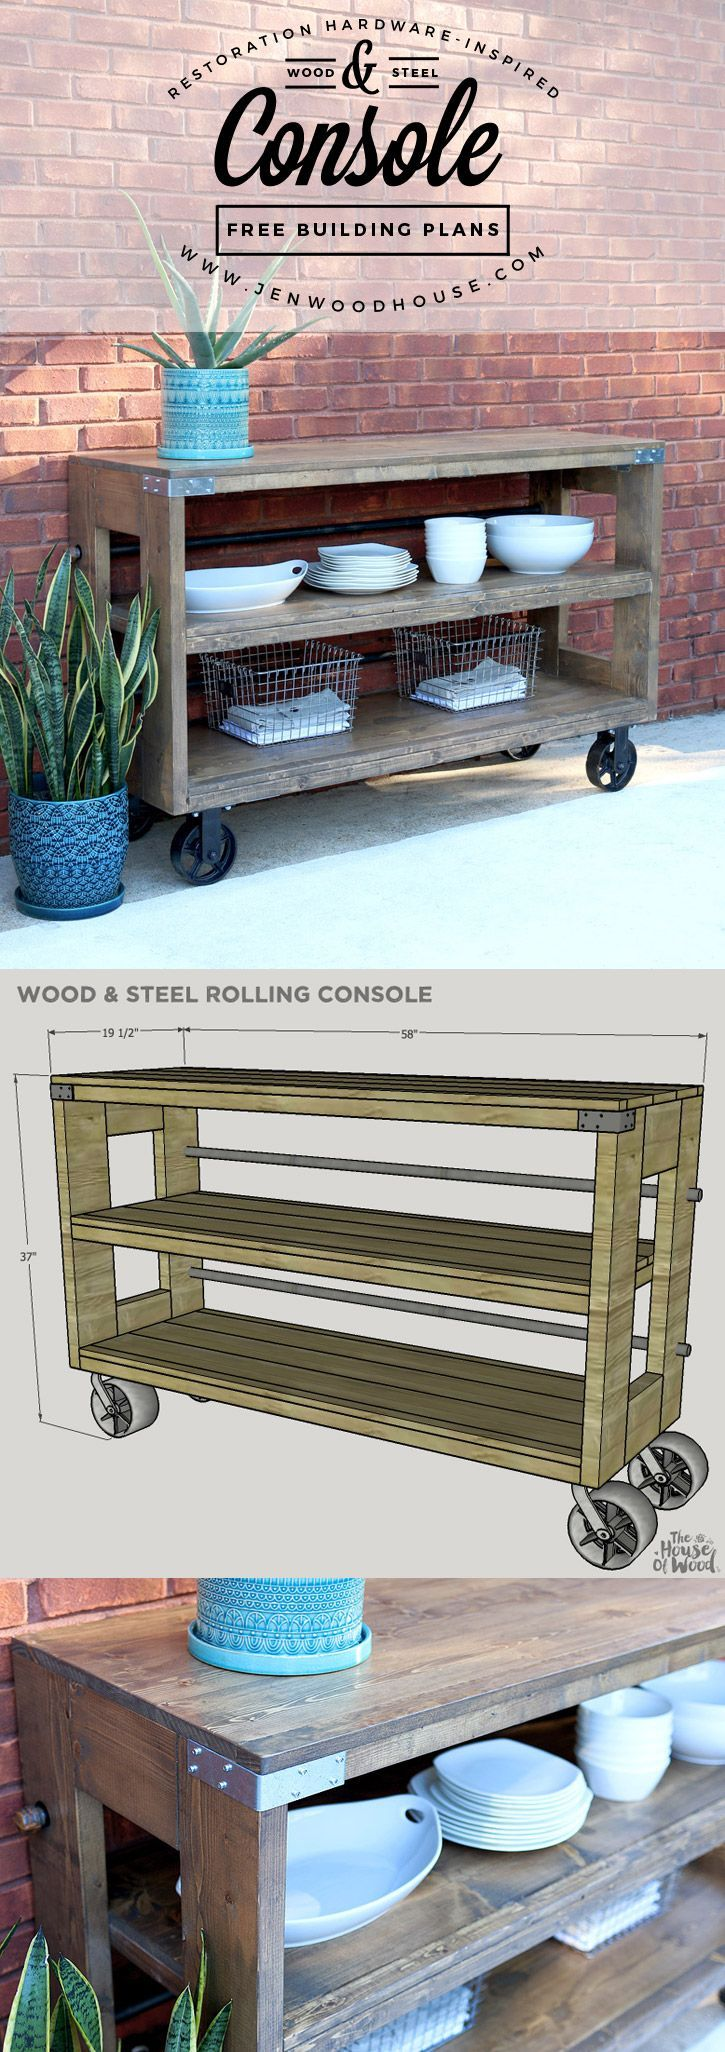 DIY Restoration Hardware-Inspired Wood & Steel Console